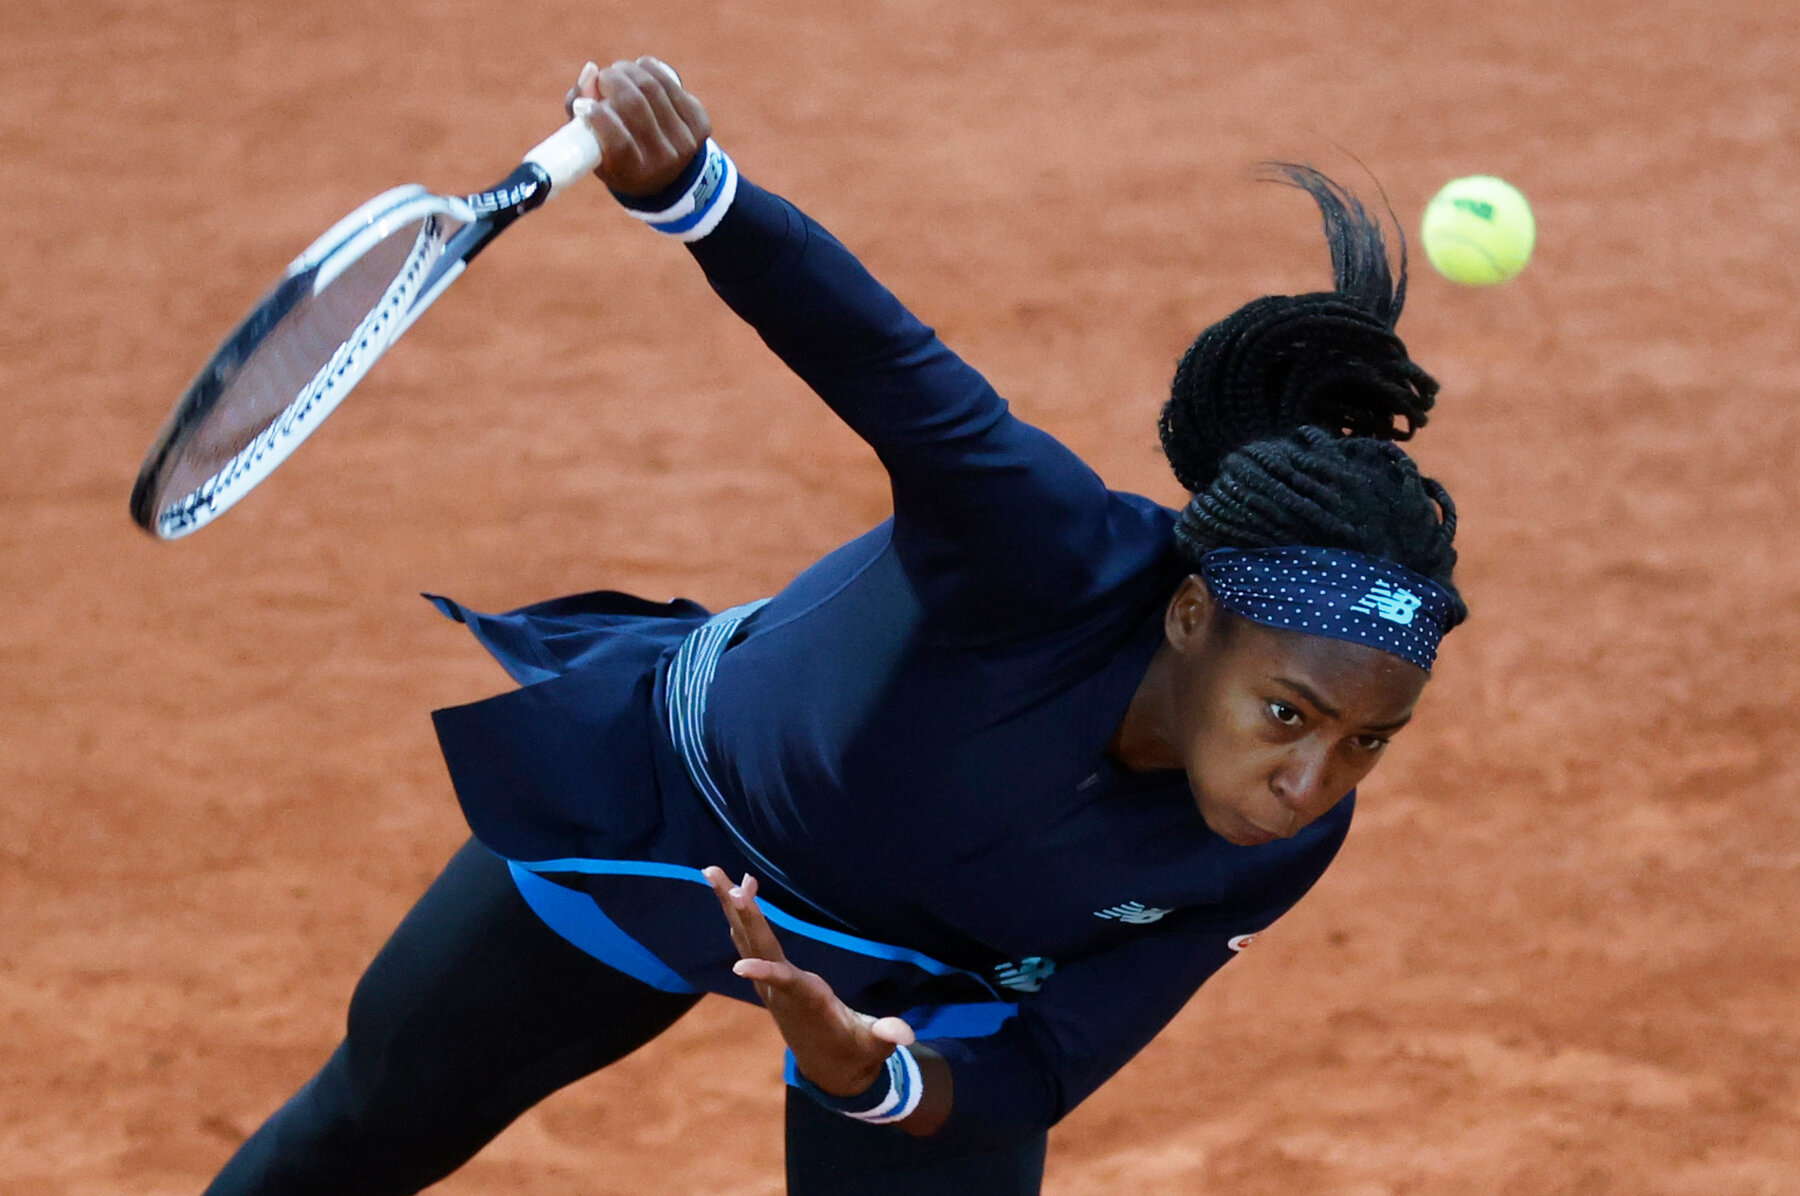 Johanna Konta knocked out of French Open by Coco Gauff